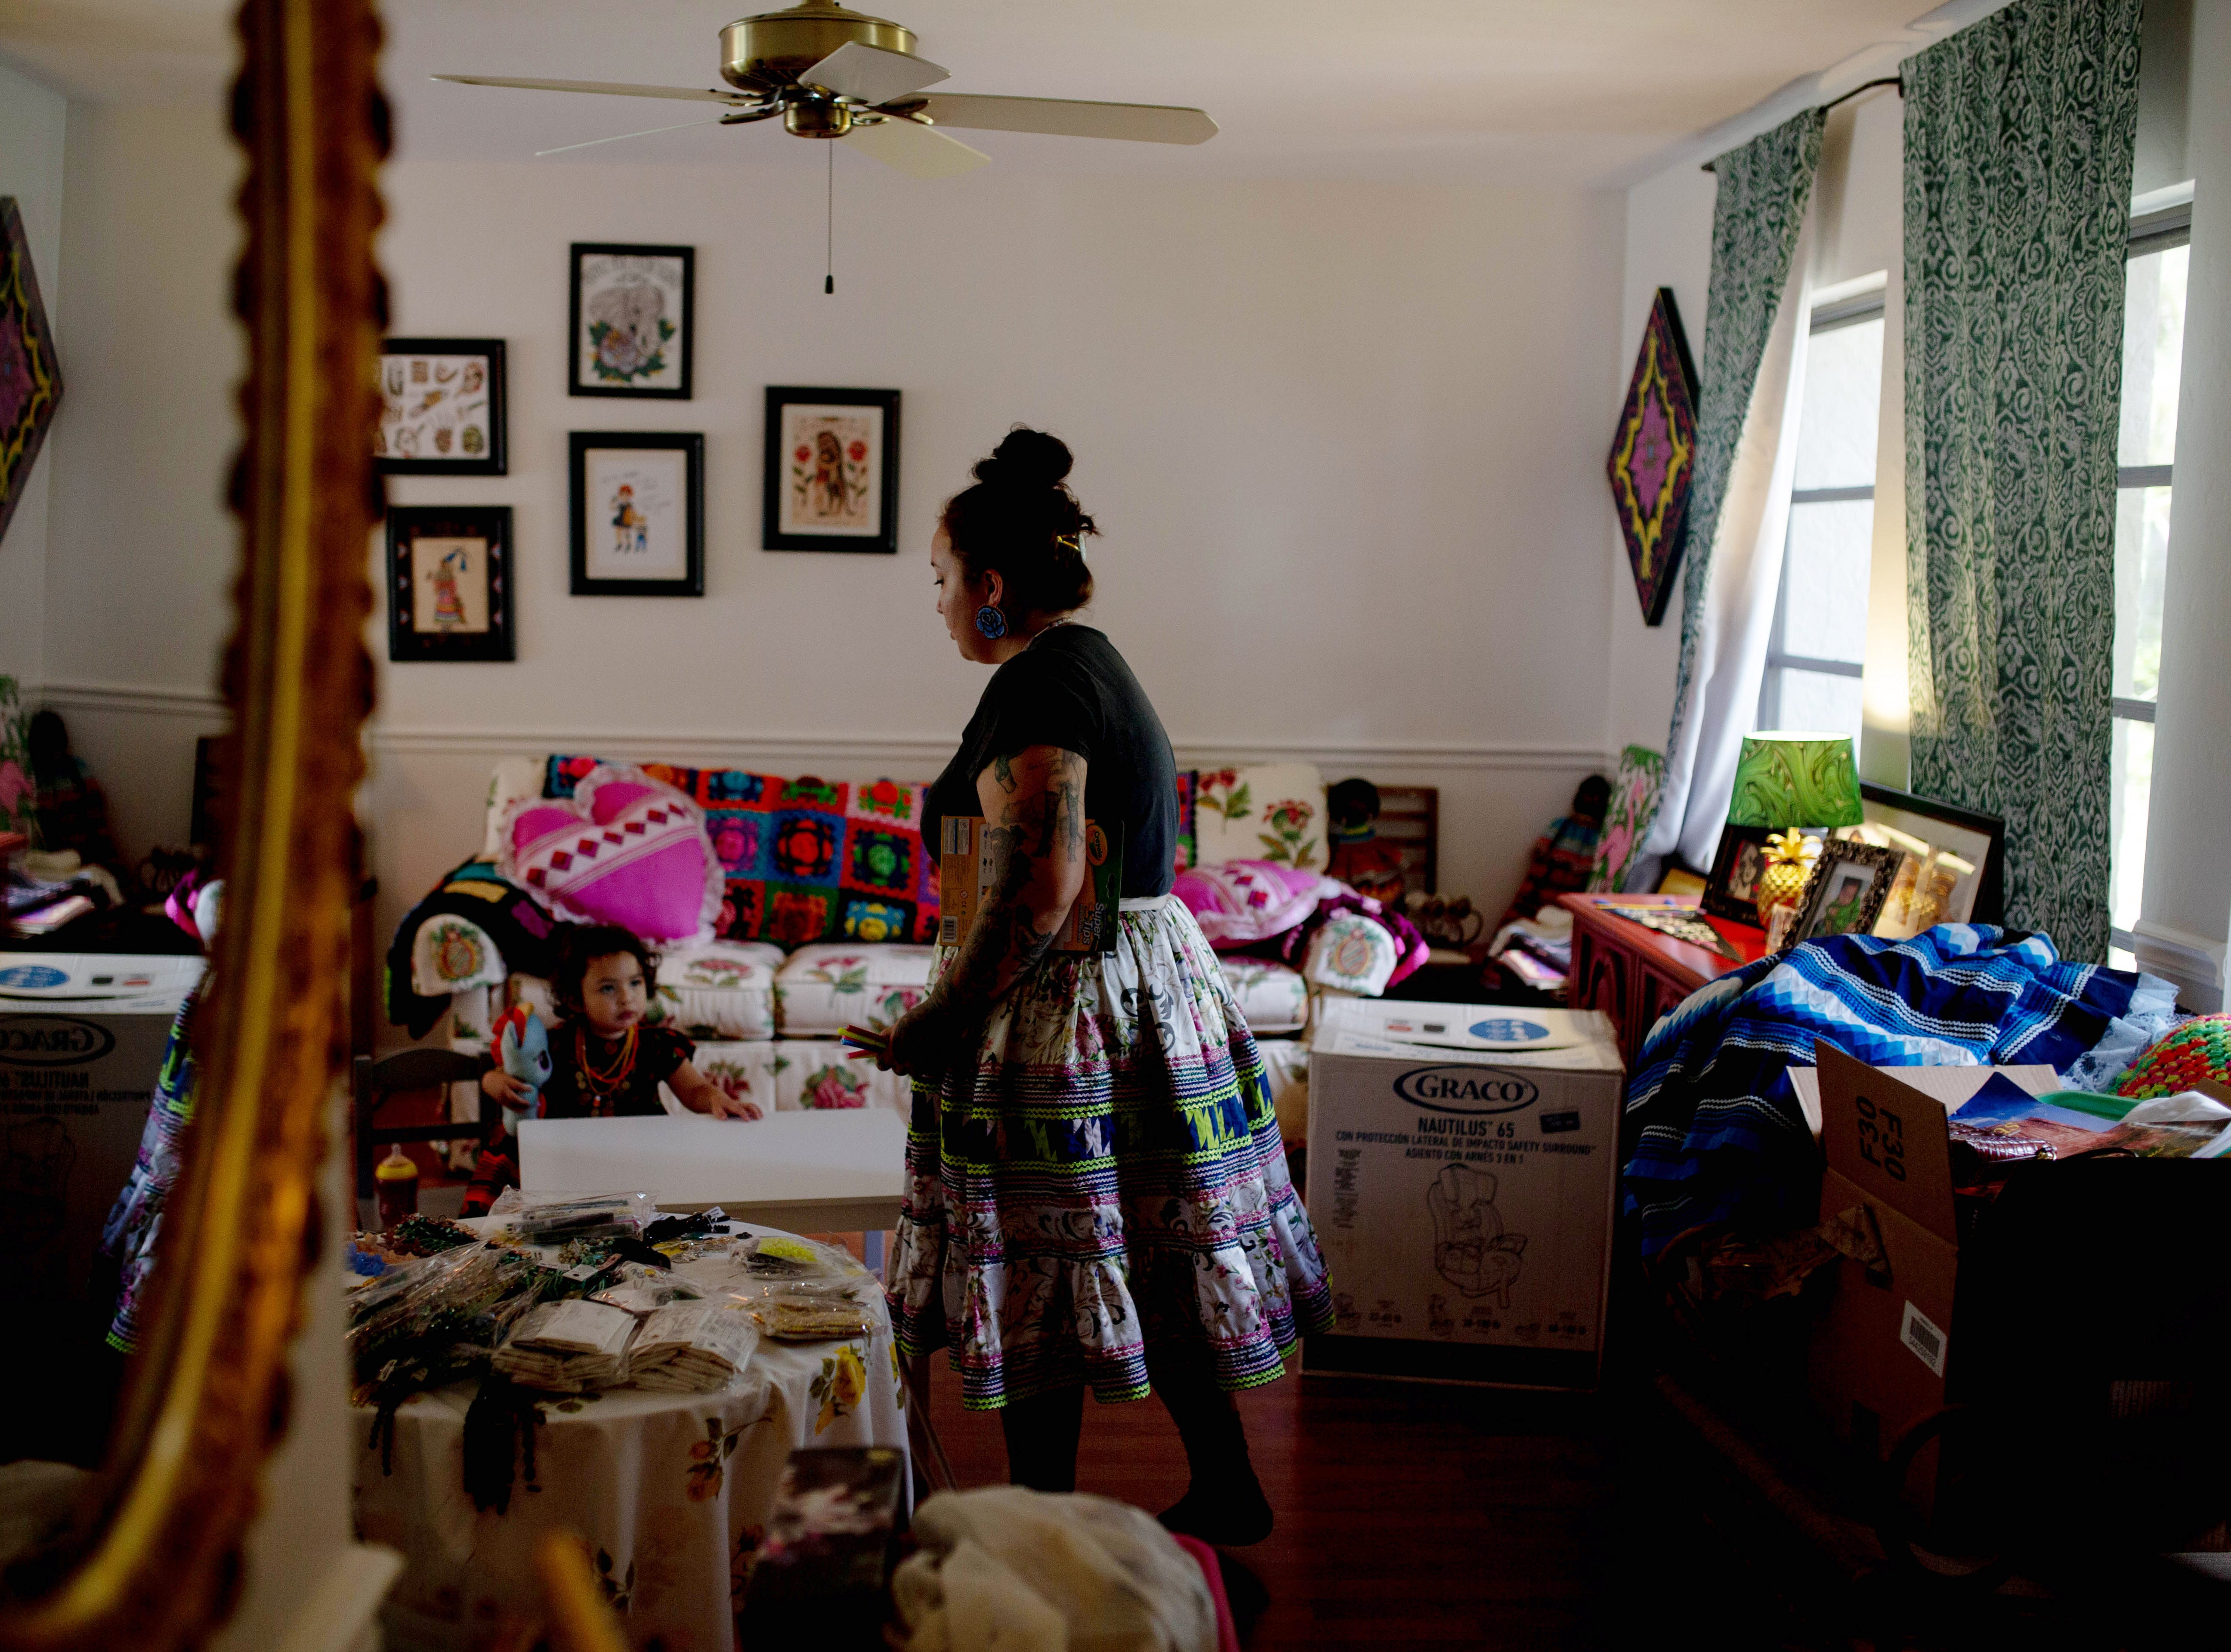 Dakota Osceola walks through her home in Naples on May 3, 2019. From the home, she makes the beadwork she sells to support herself and her daughter.